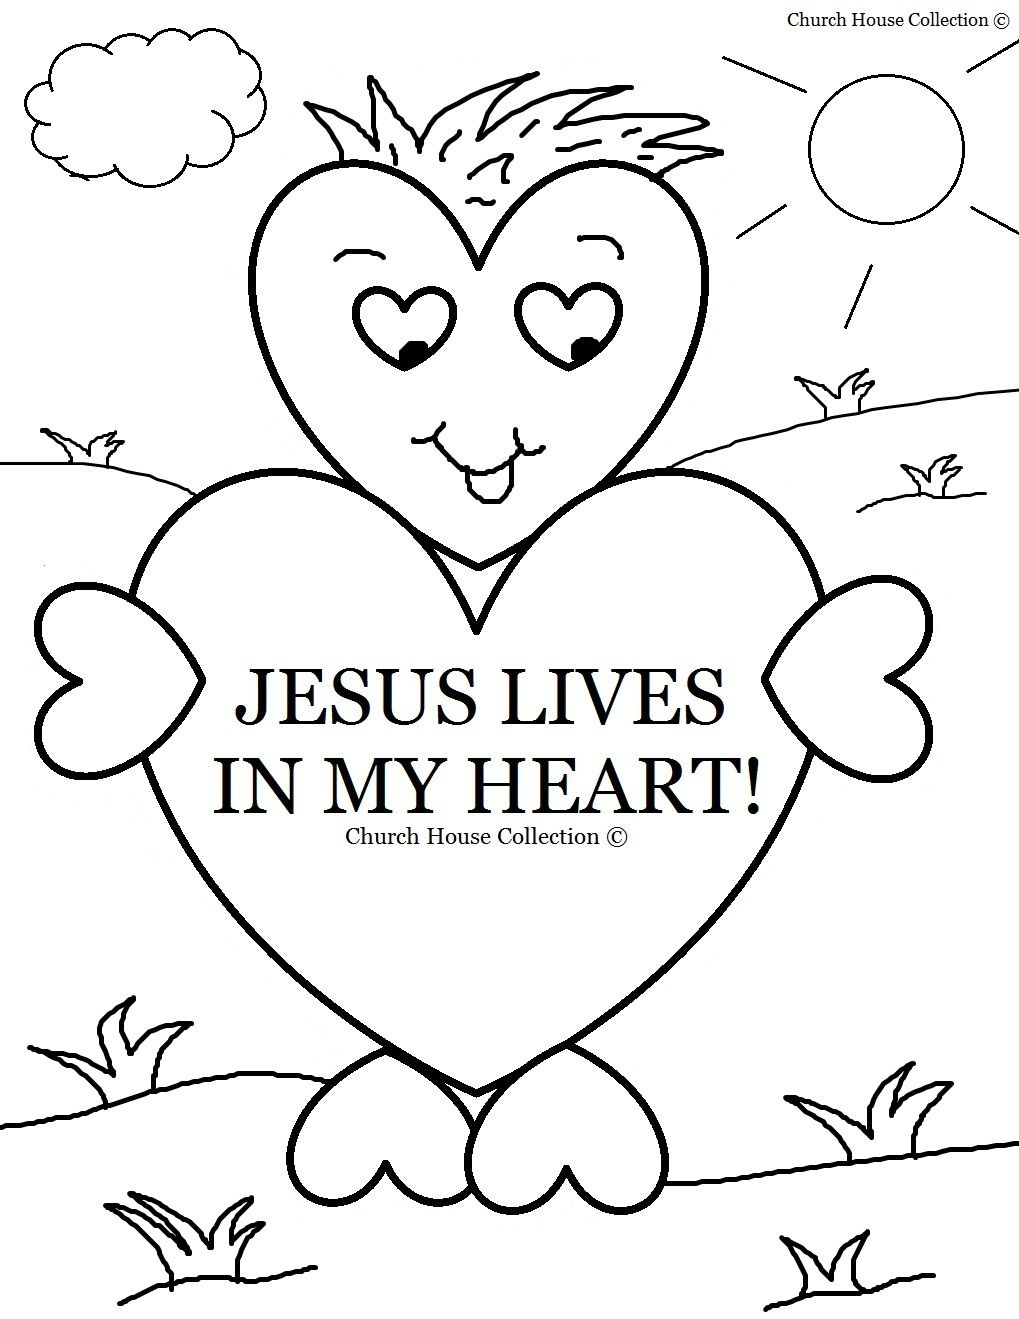 Childrens christian valentine coloring pages - Valentine S Day Coloring Page For Sunday School Jesus Lives In My Heart For Children S Church Lilly Class V Day Crafts